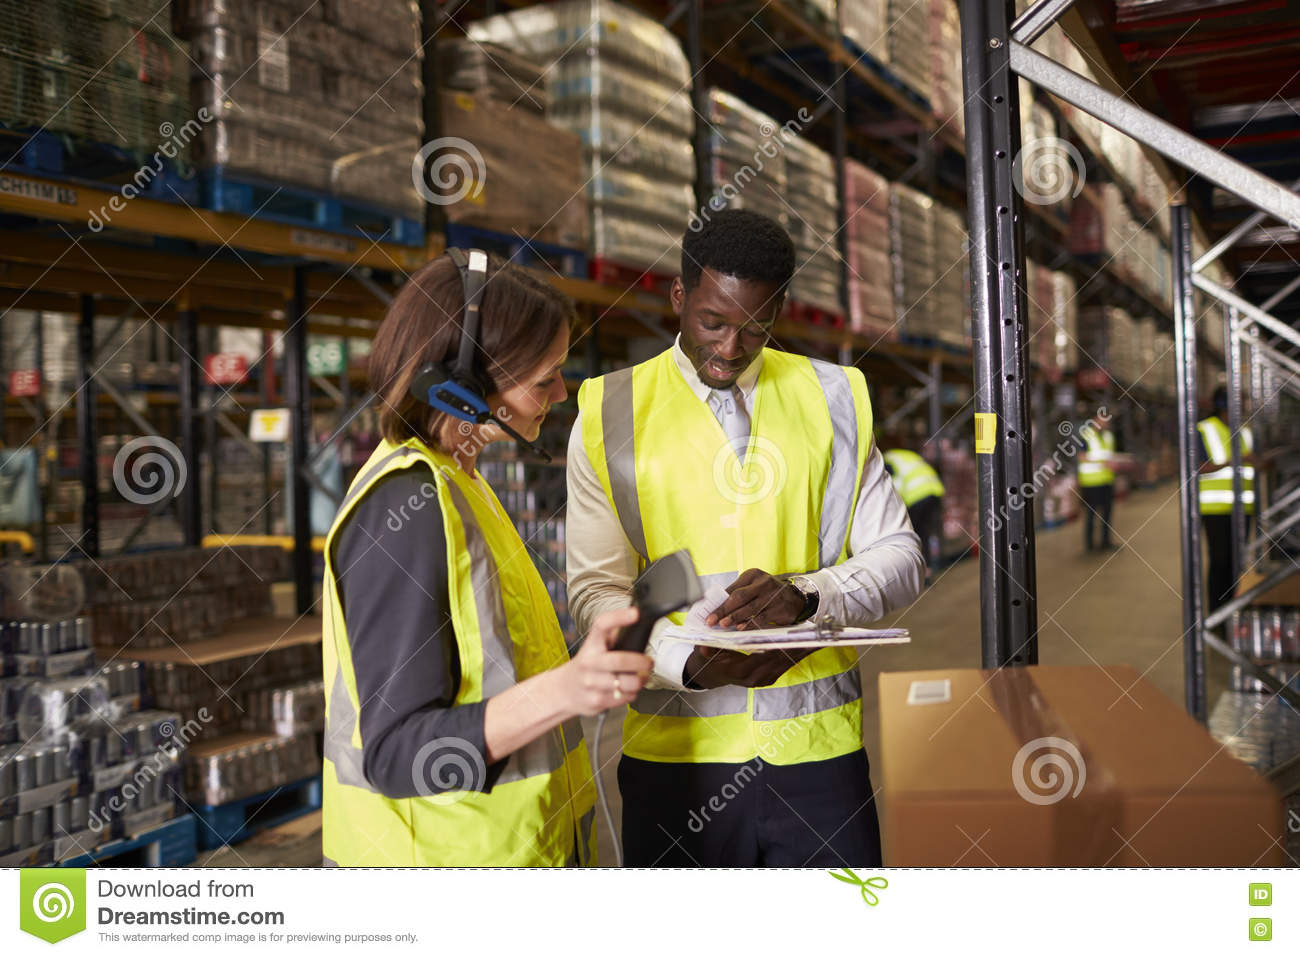 Warehouse manager talking with woman using barcode reader